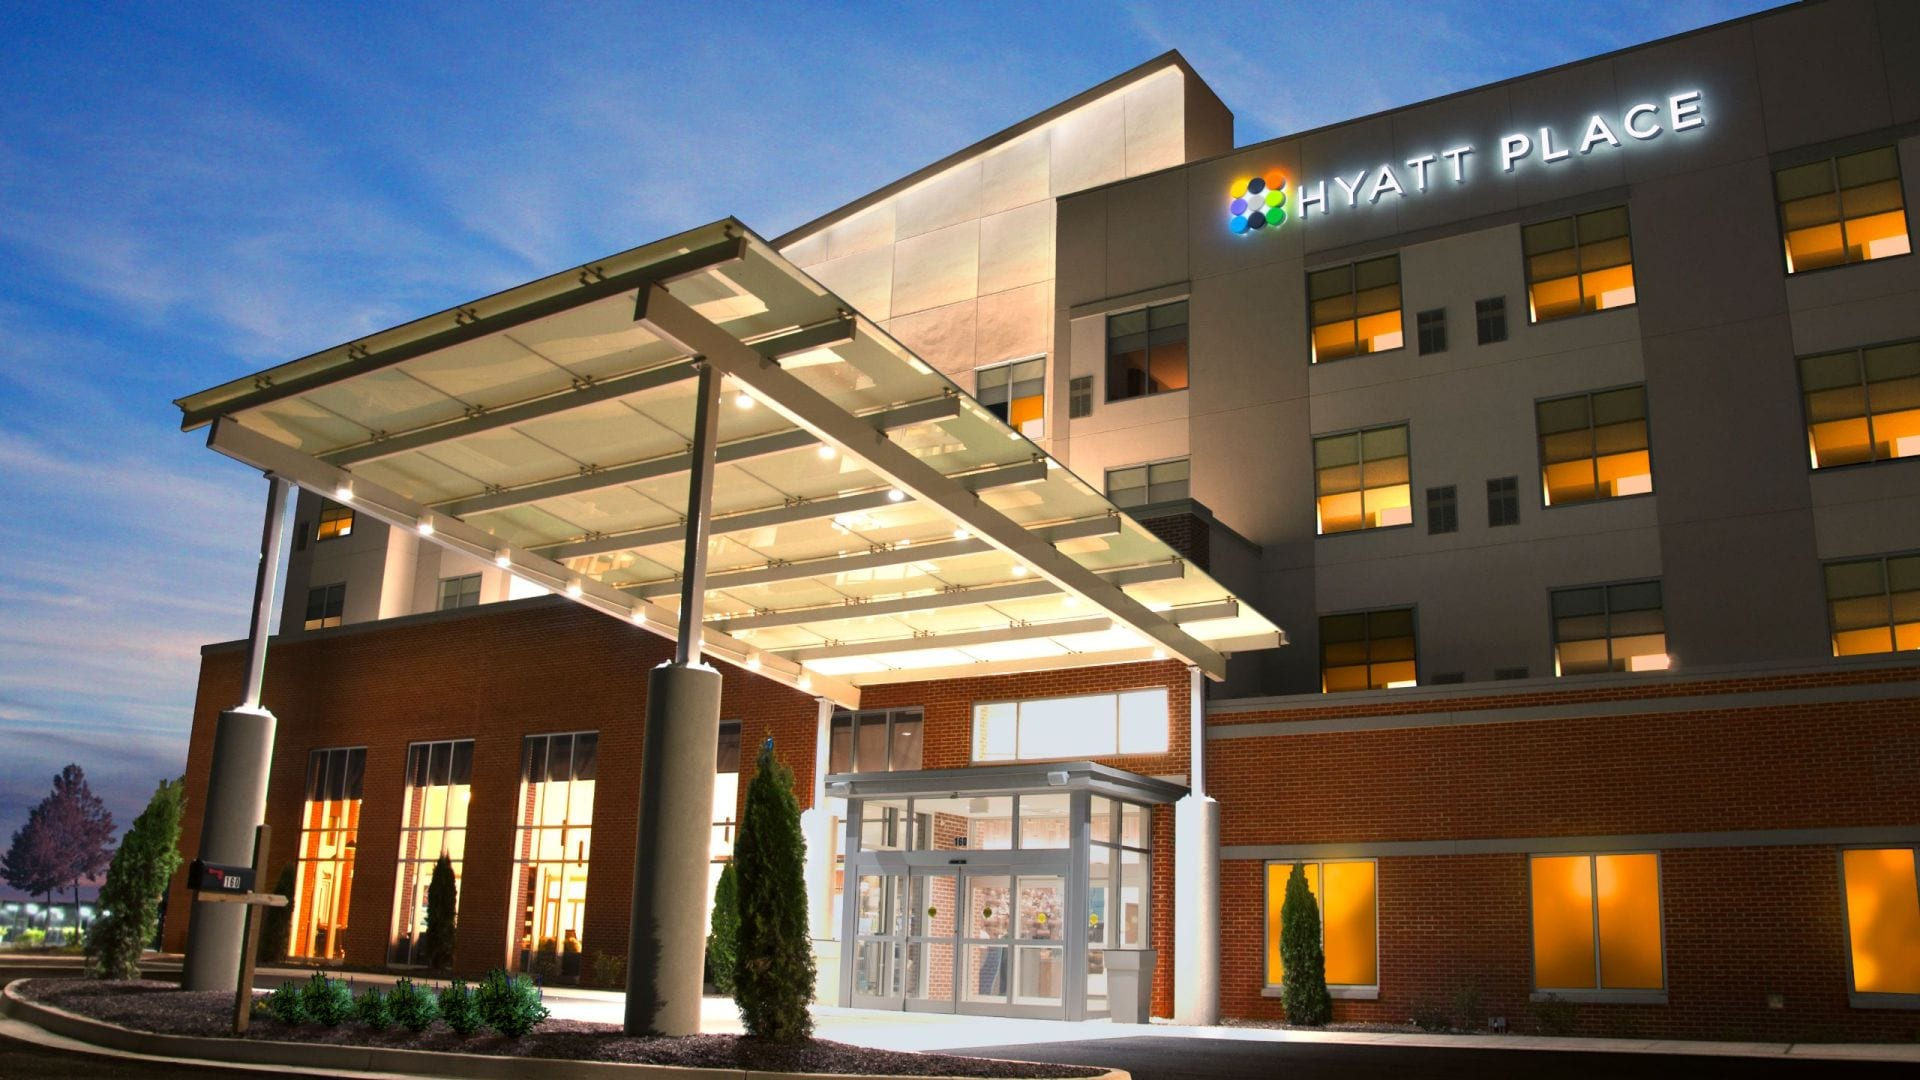 Hyatt Place Augusta – Hotel Accommodations / Rooms / Lodging